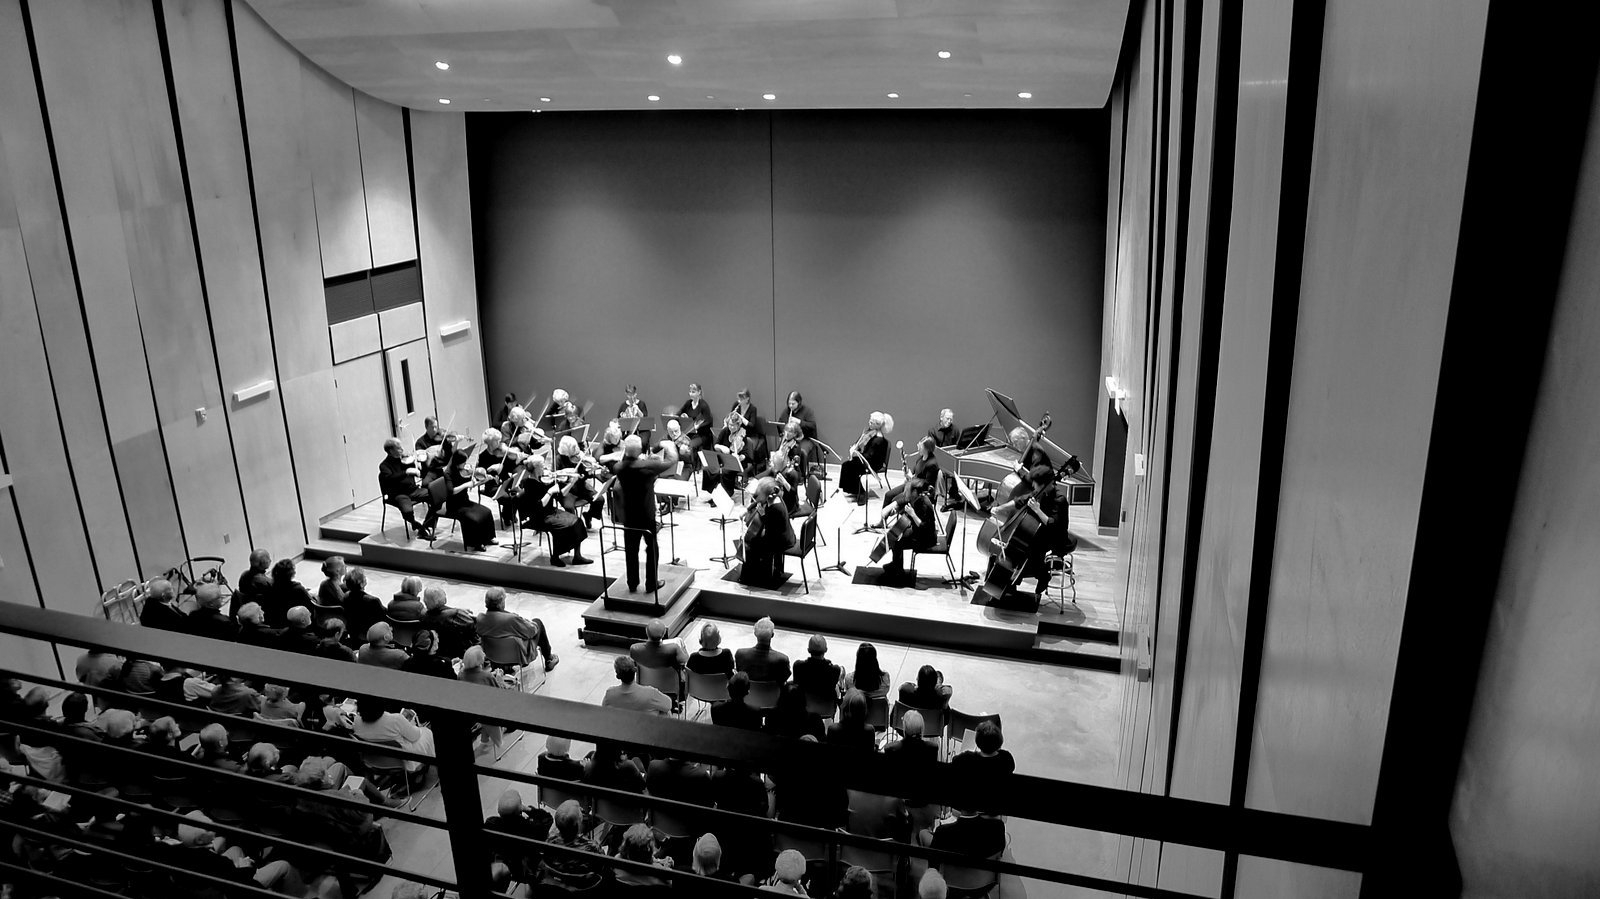 Orchestra performing in hall